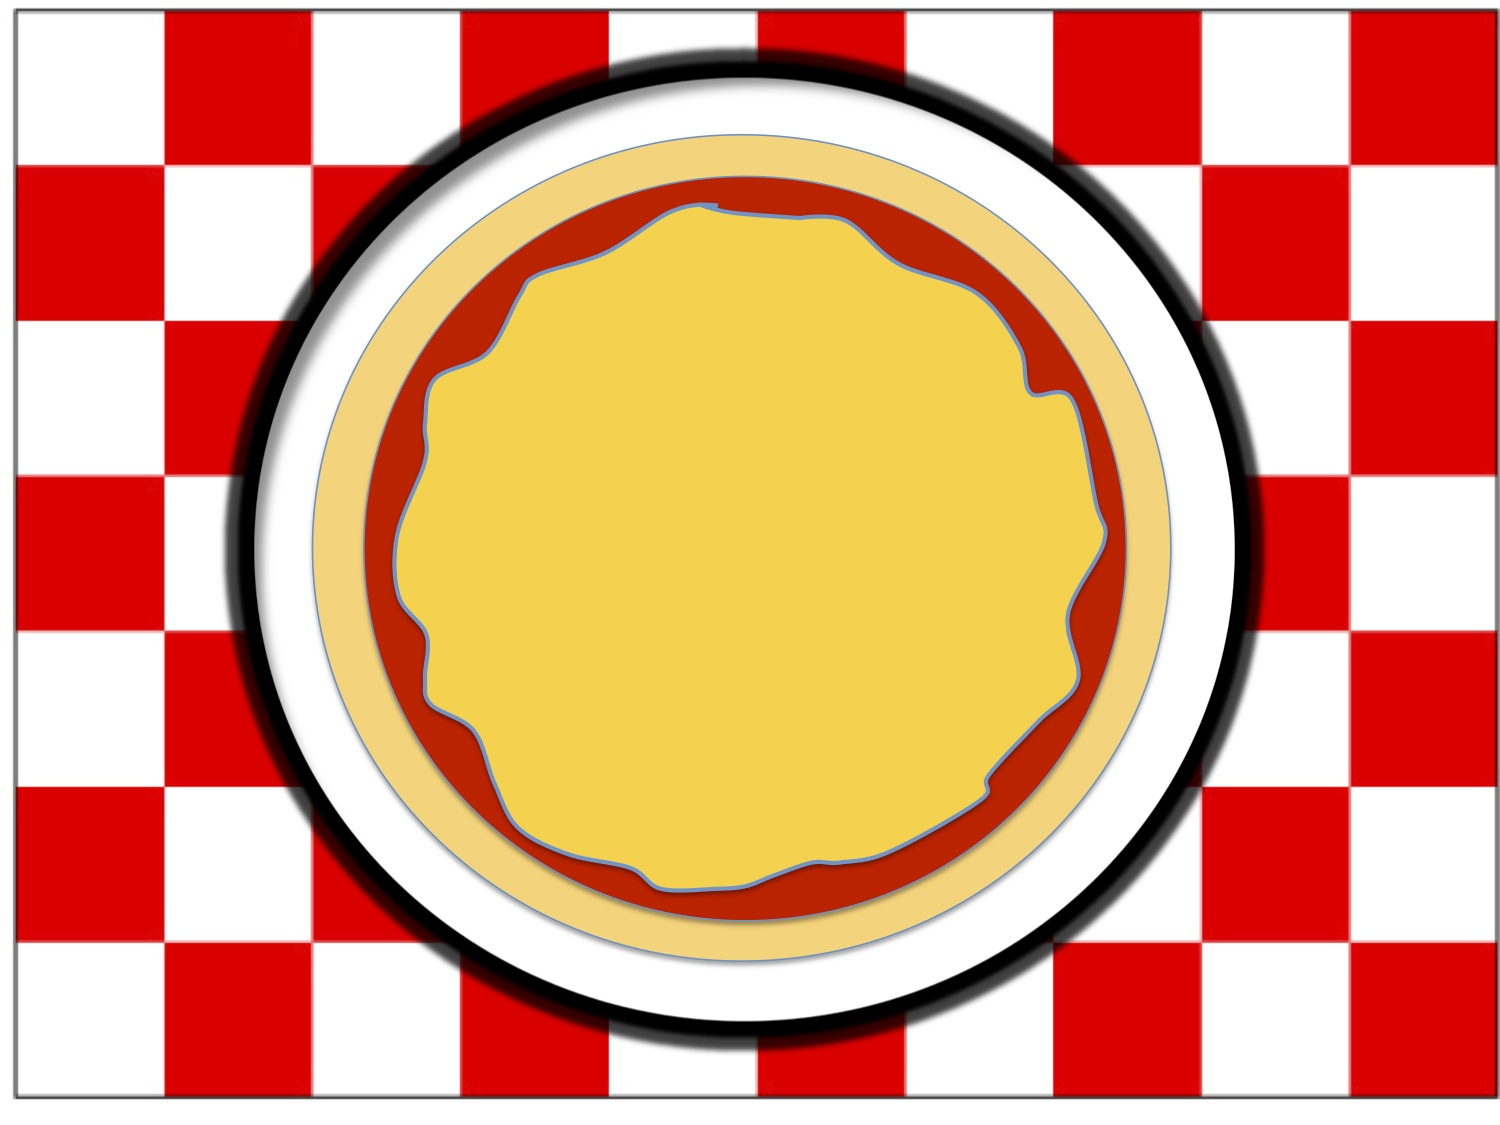 image about Printable Placemat Template named Placemat Clipart at  No cost for particular person seek the services of